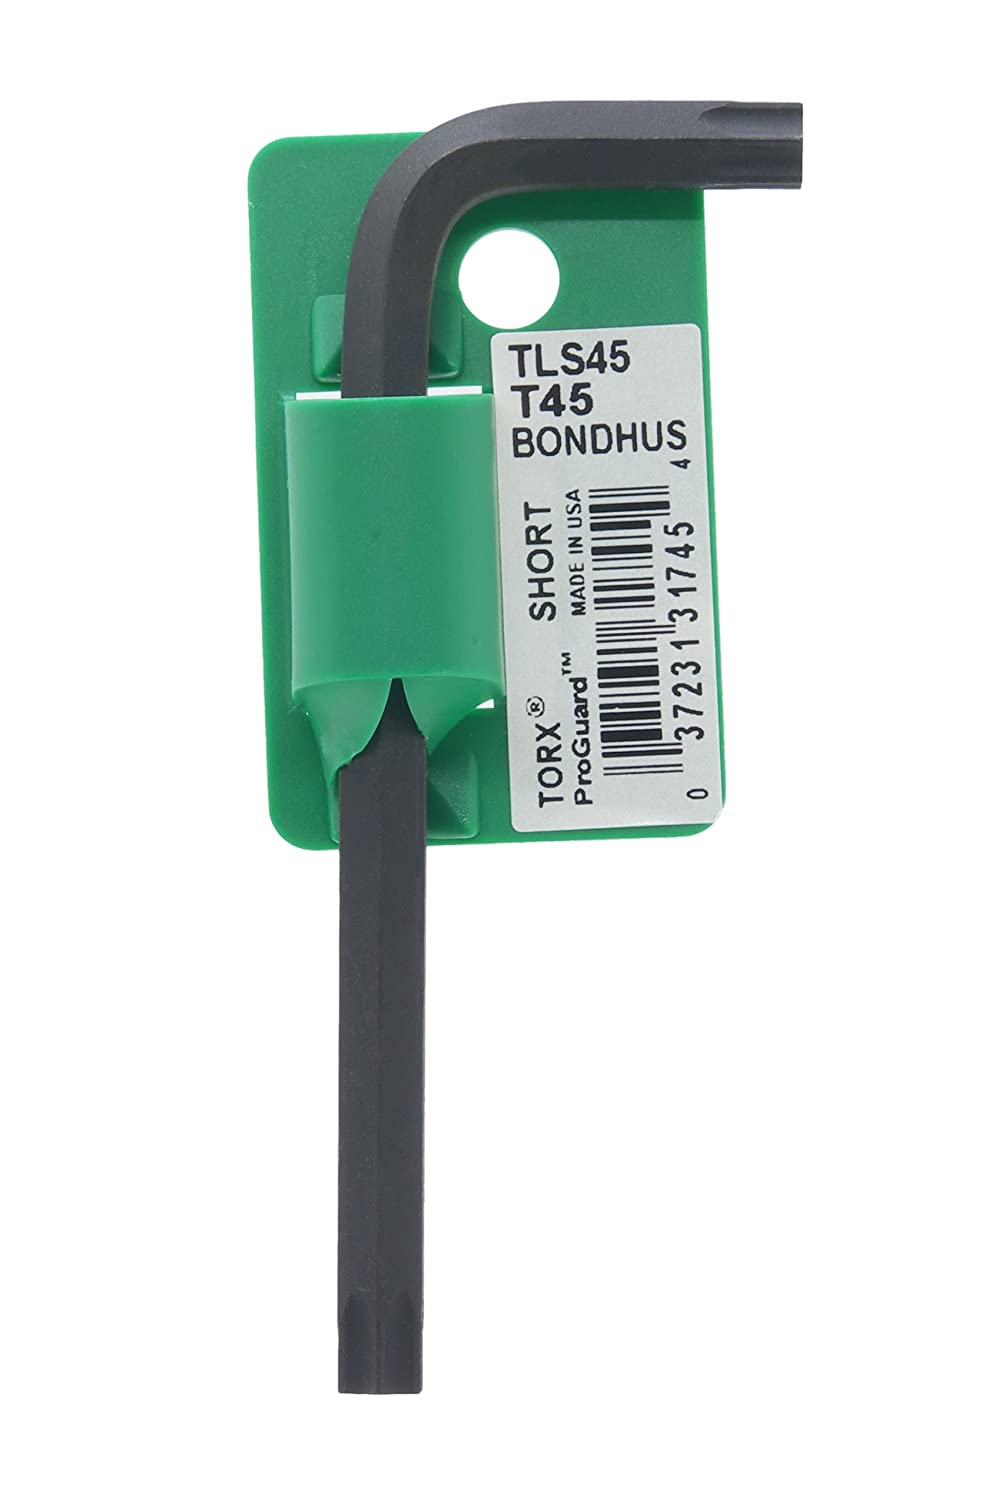 3.9 Bondhus 31745 Tagged and Barcoded T45 Star Tip Hex Key L-Wrench with ProGuard Finish